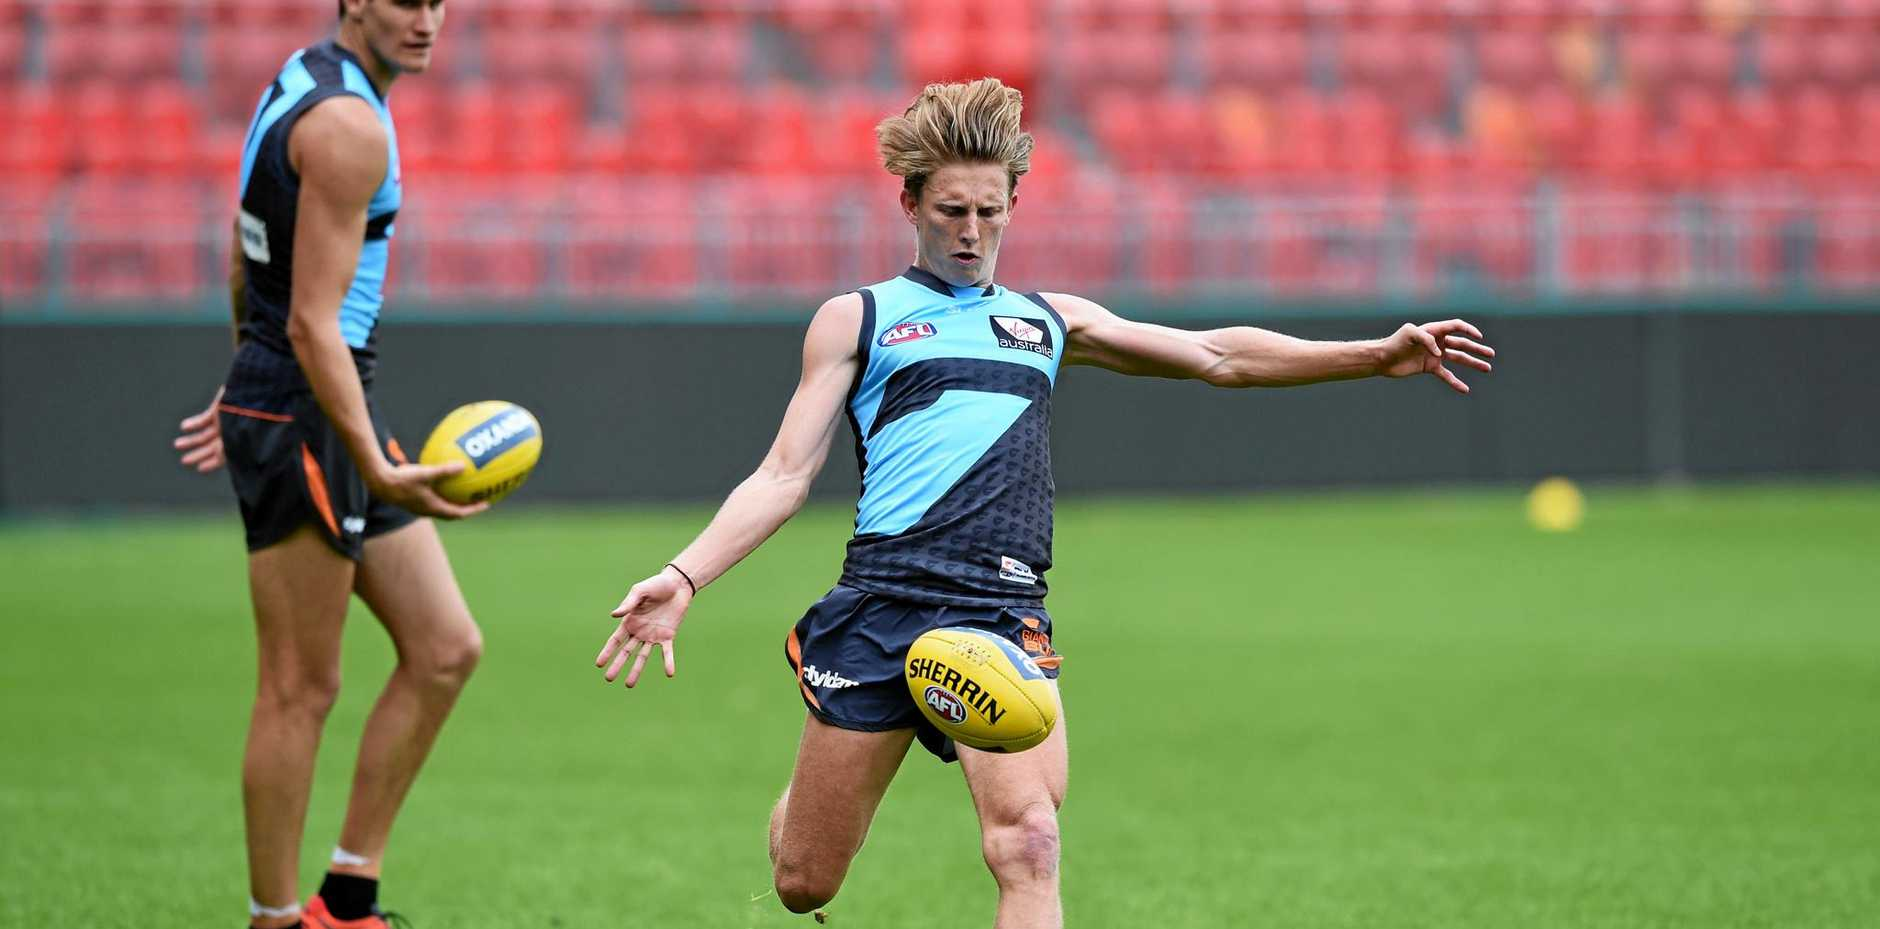 GWS Giants young gun Lachie Whitfield is expected to be included in the side to take on Collingwood this weekend.